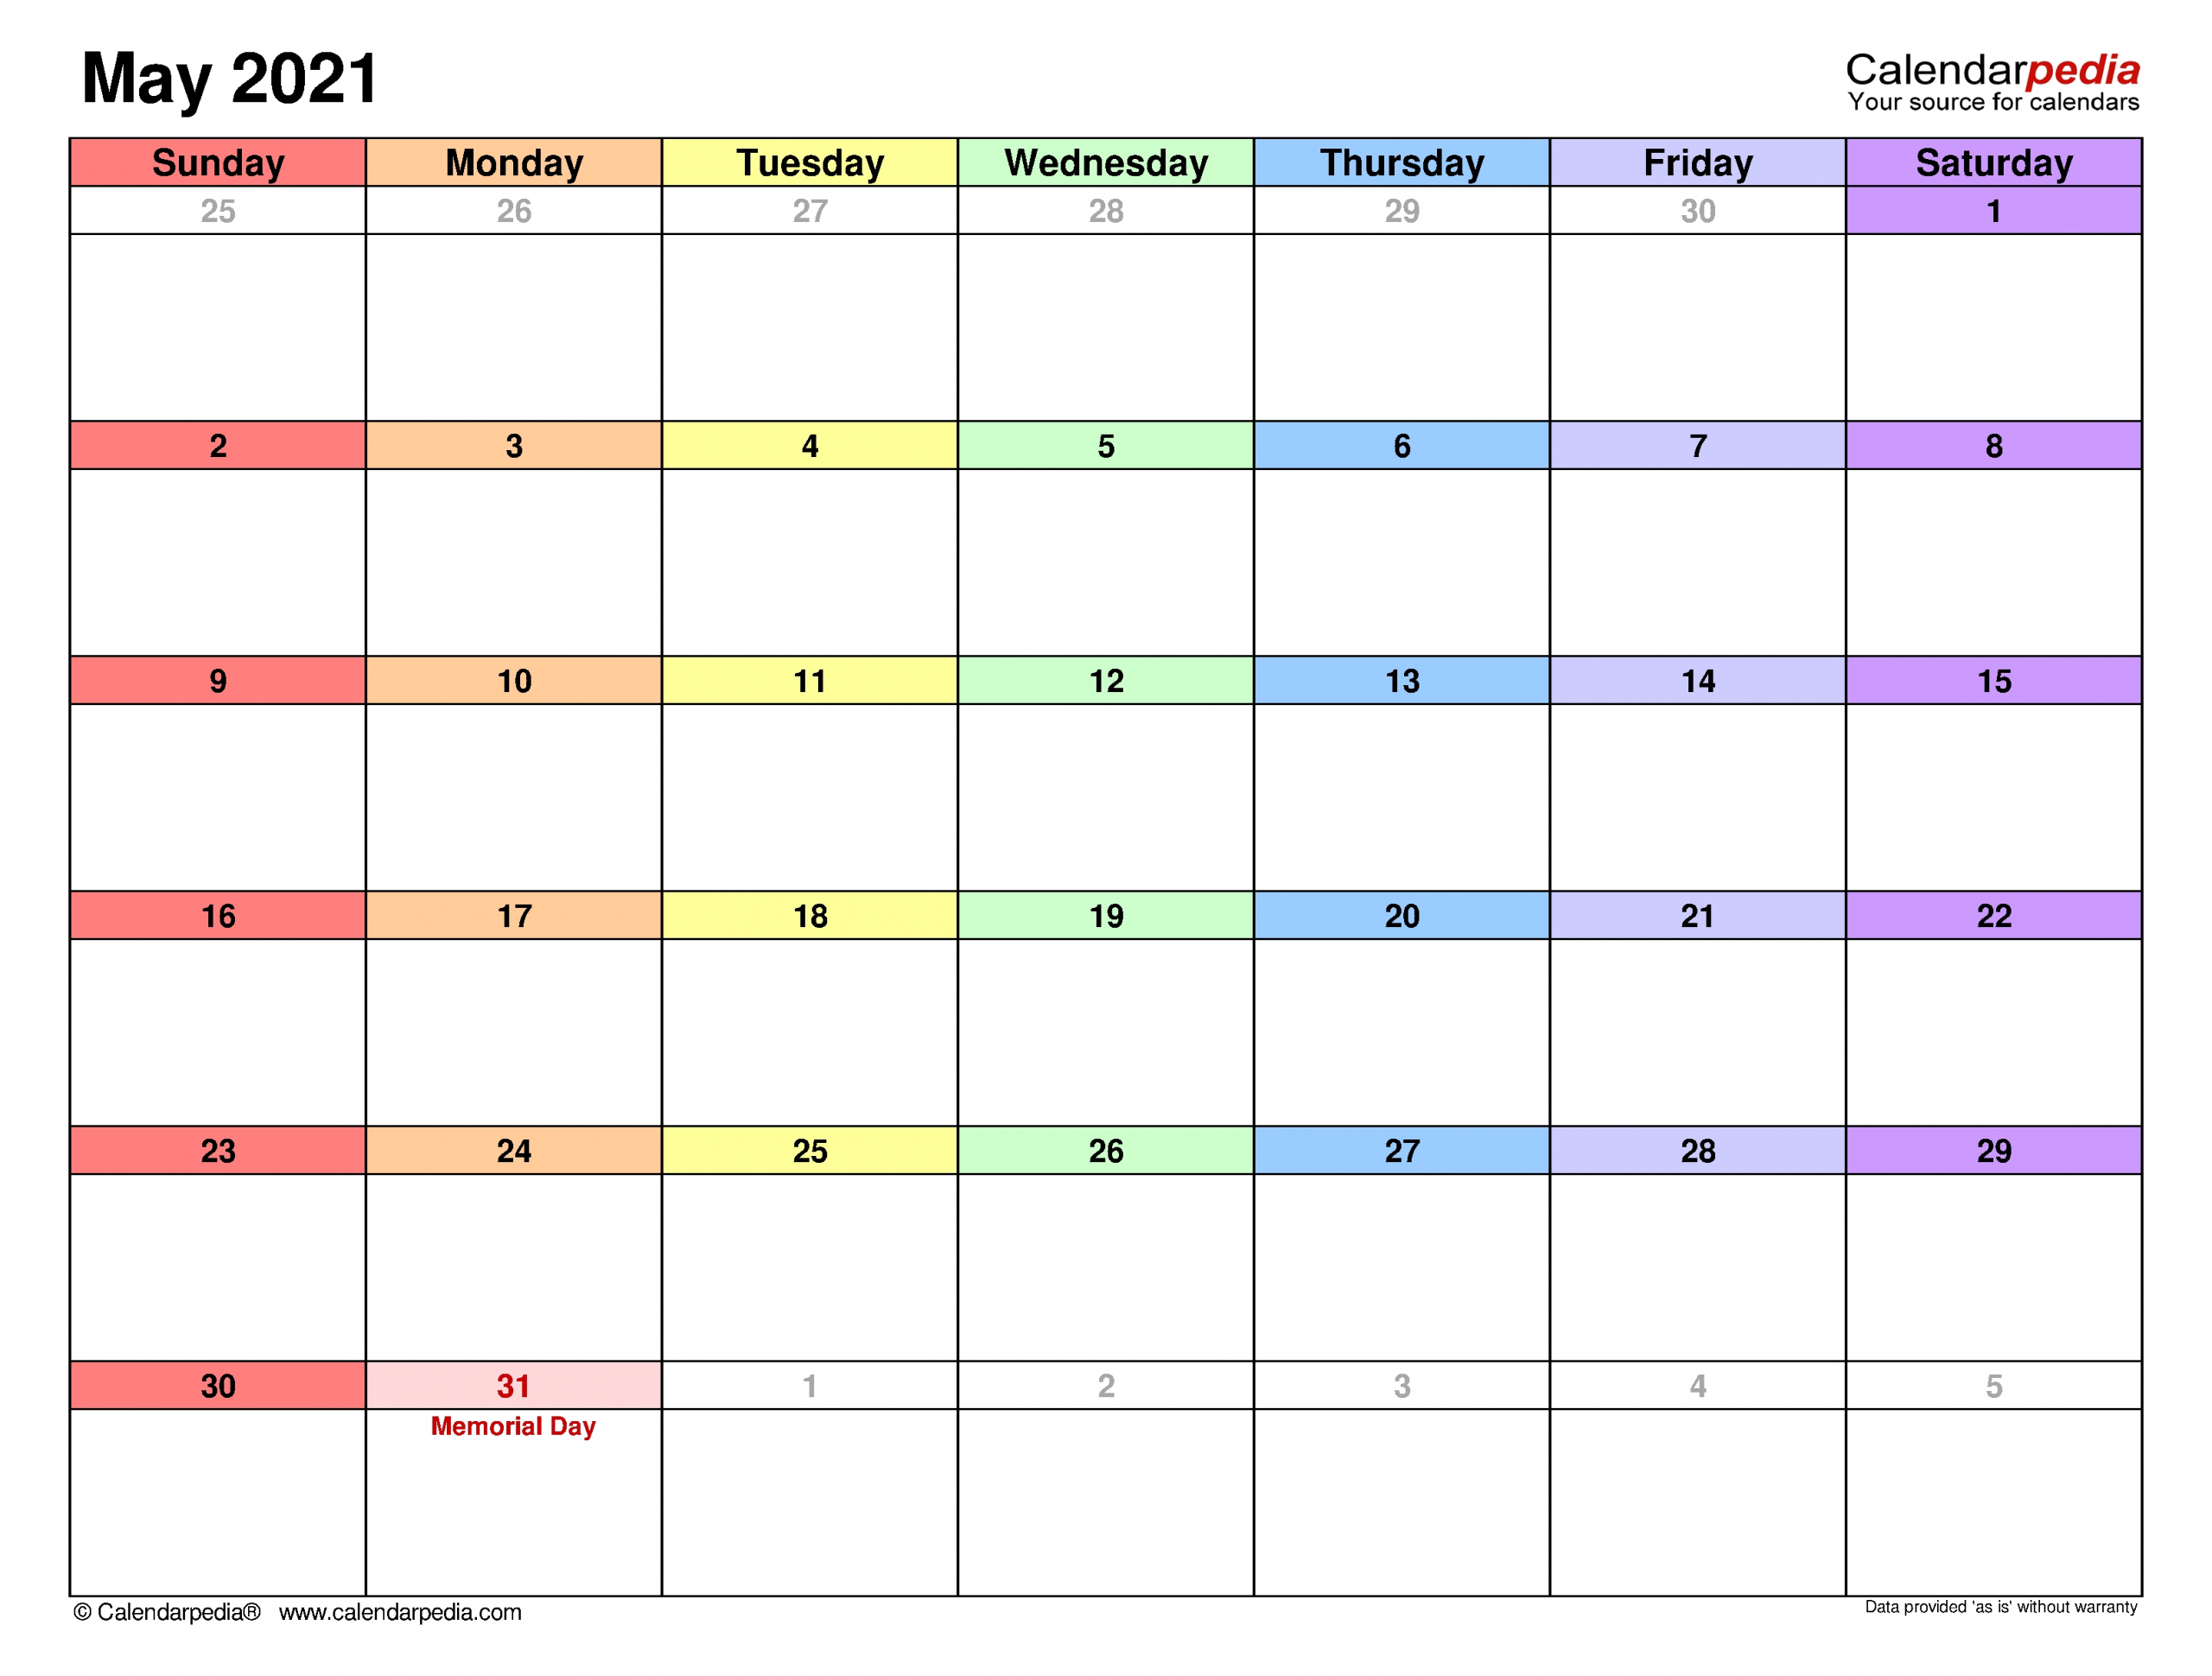 May 2021 Calendar | Templates For Word, Excel And Pdf-2021 2 Page Per Month May Calendar Picture